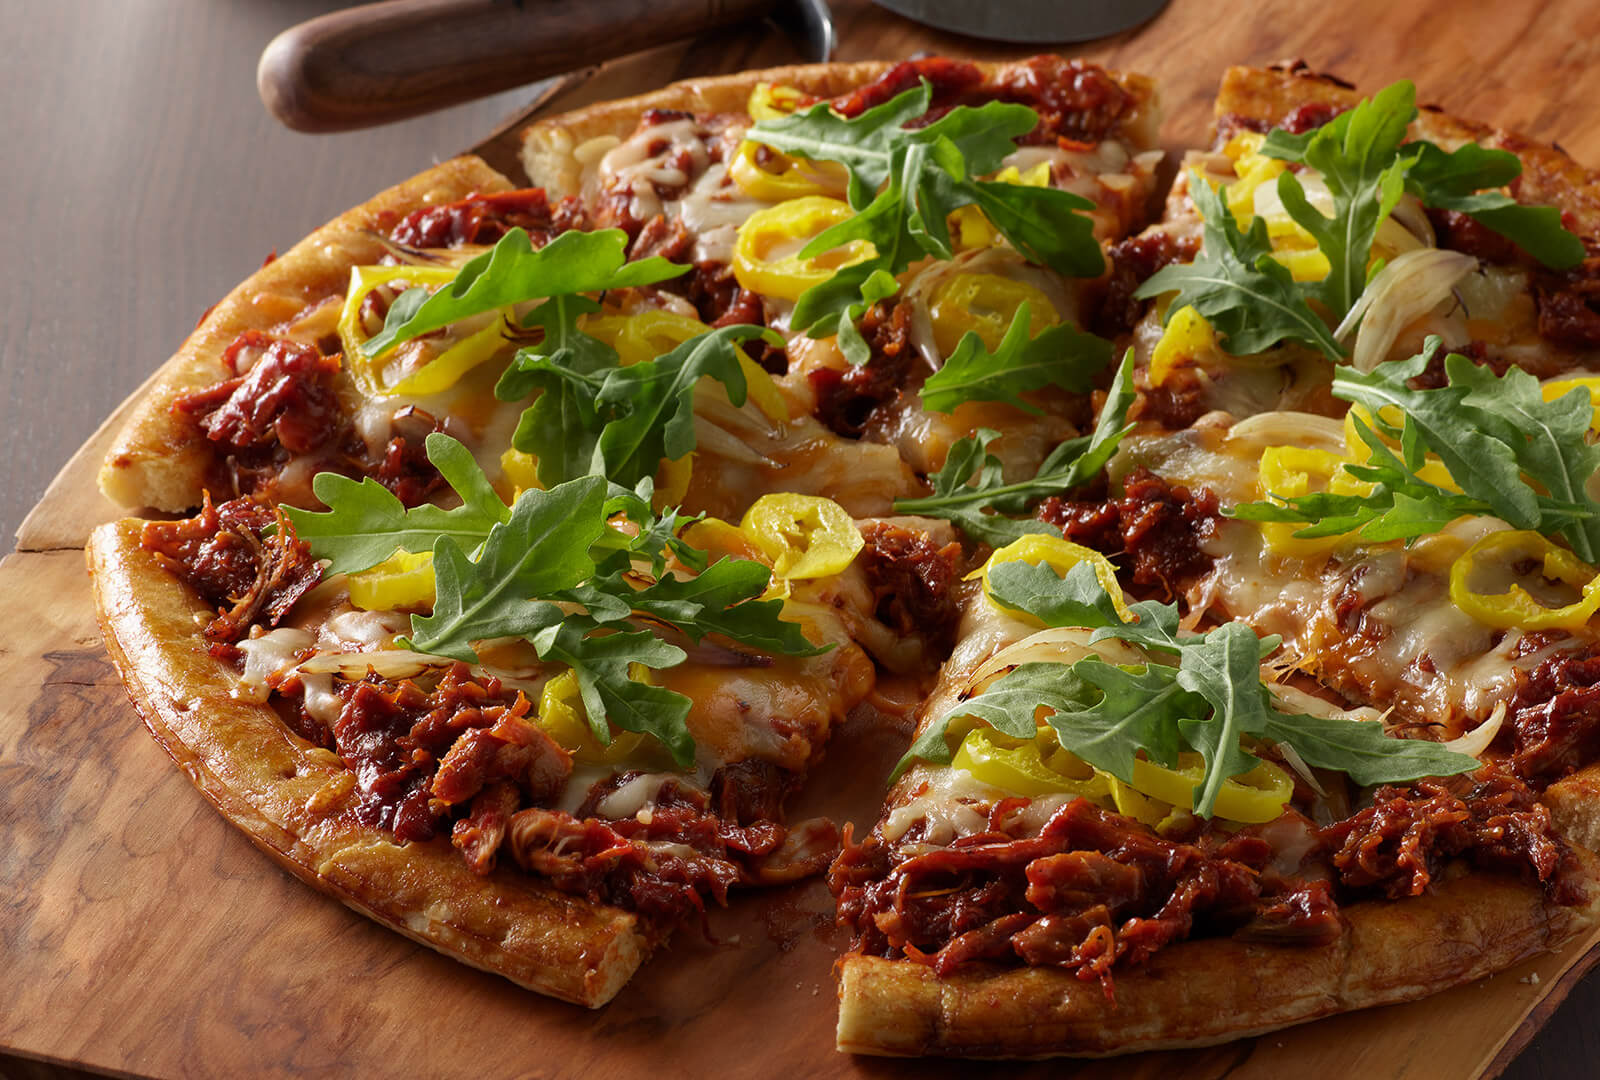 LLOYD'S® Pig Beach BBQ Chicken Pizza with Arugula, Shallot & Banana Peppers